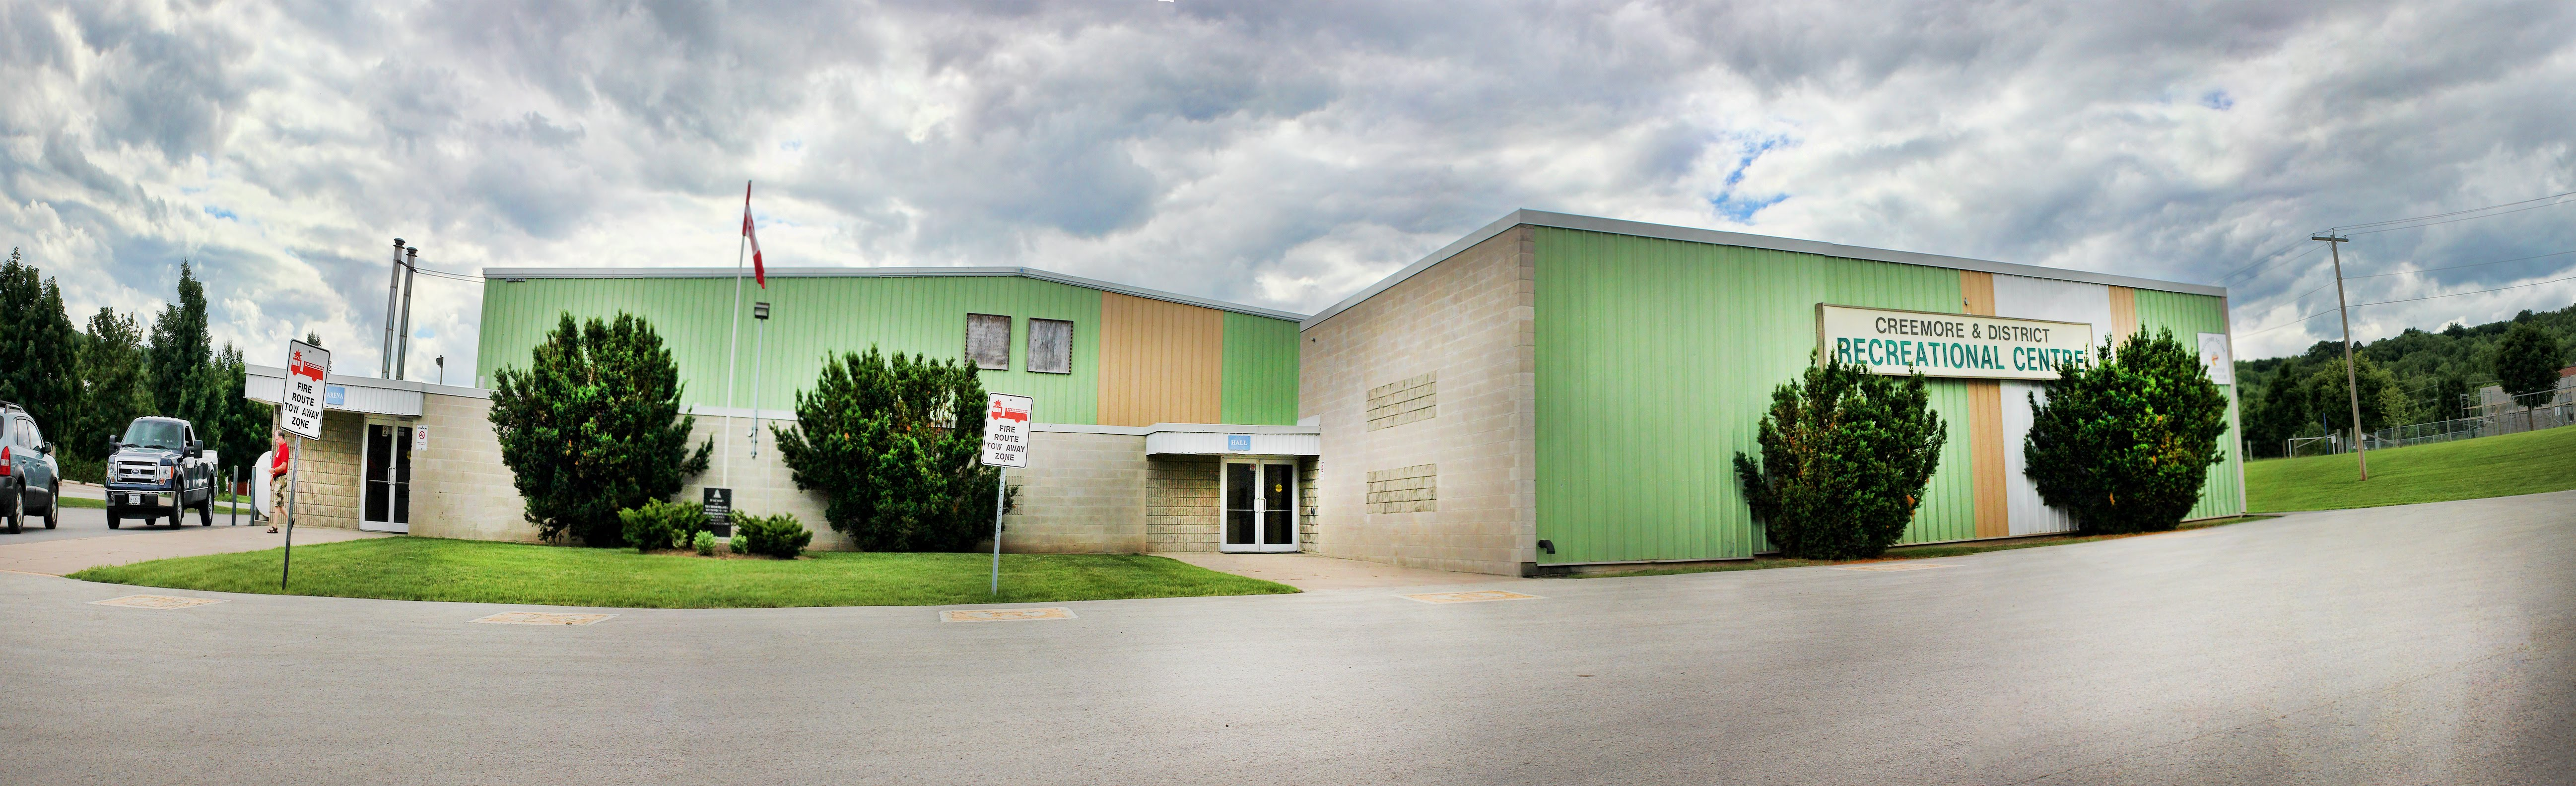 Creemore Community Centre and Arena